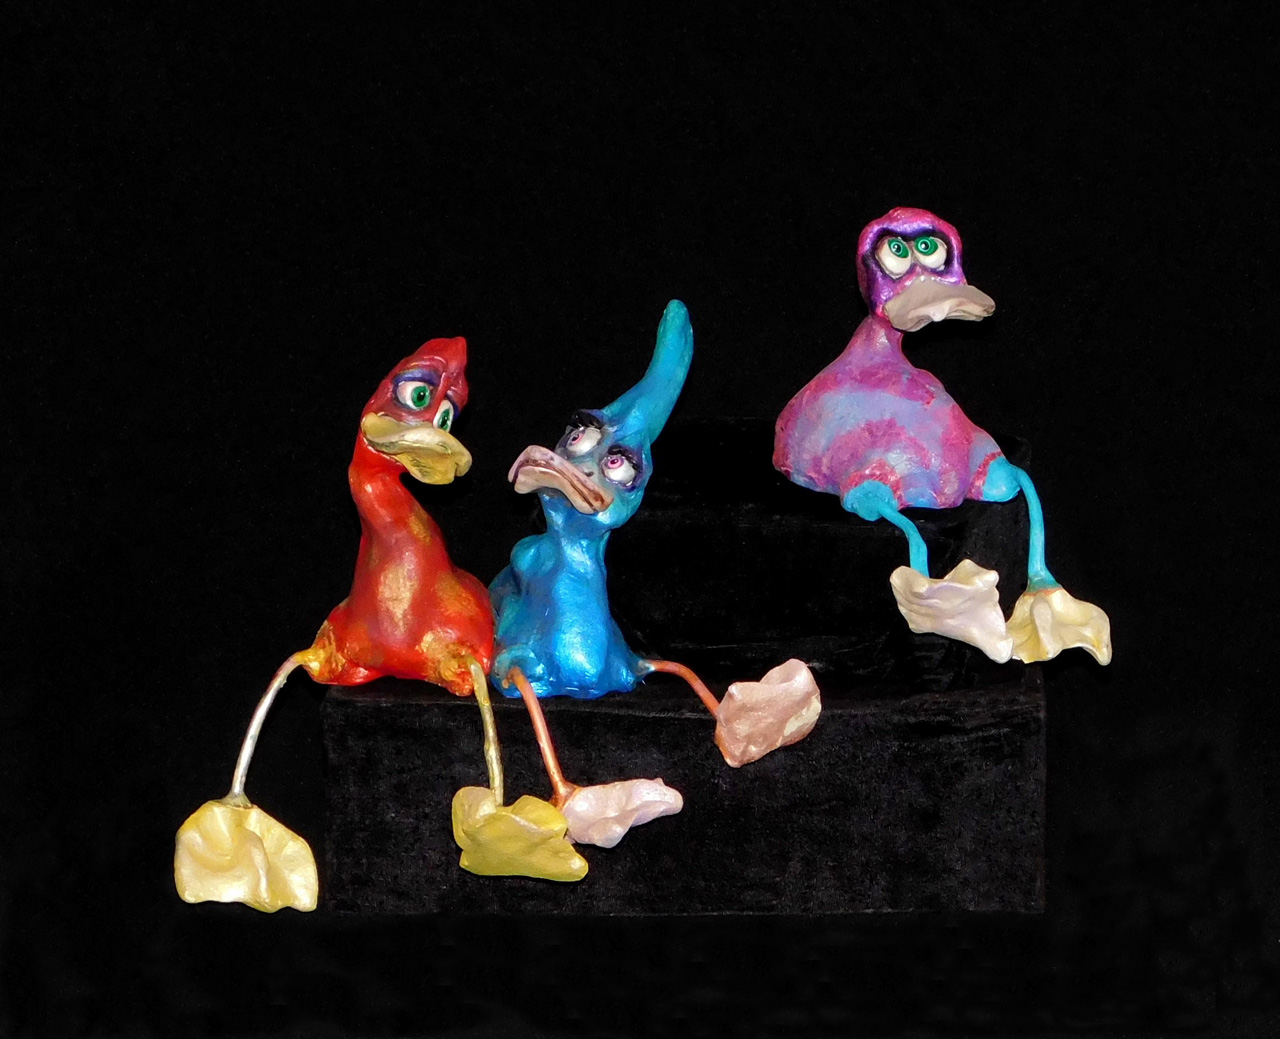 Quackers by Steven Lee Smeltzer cartoonish whimsical clay sculpture of ducks